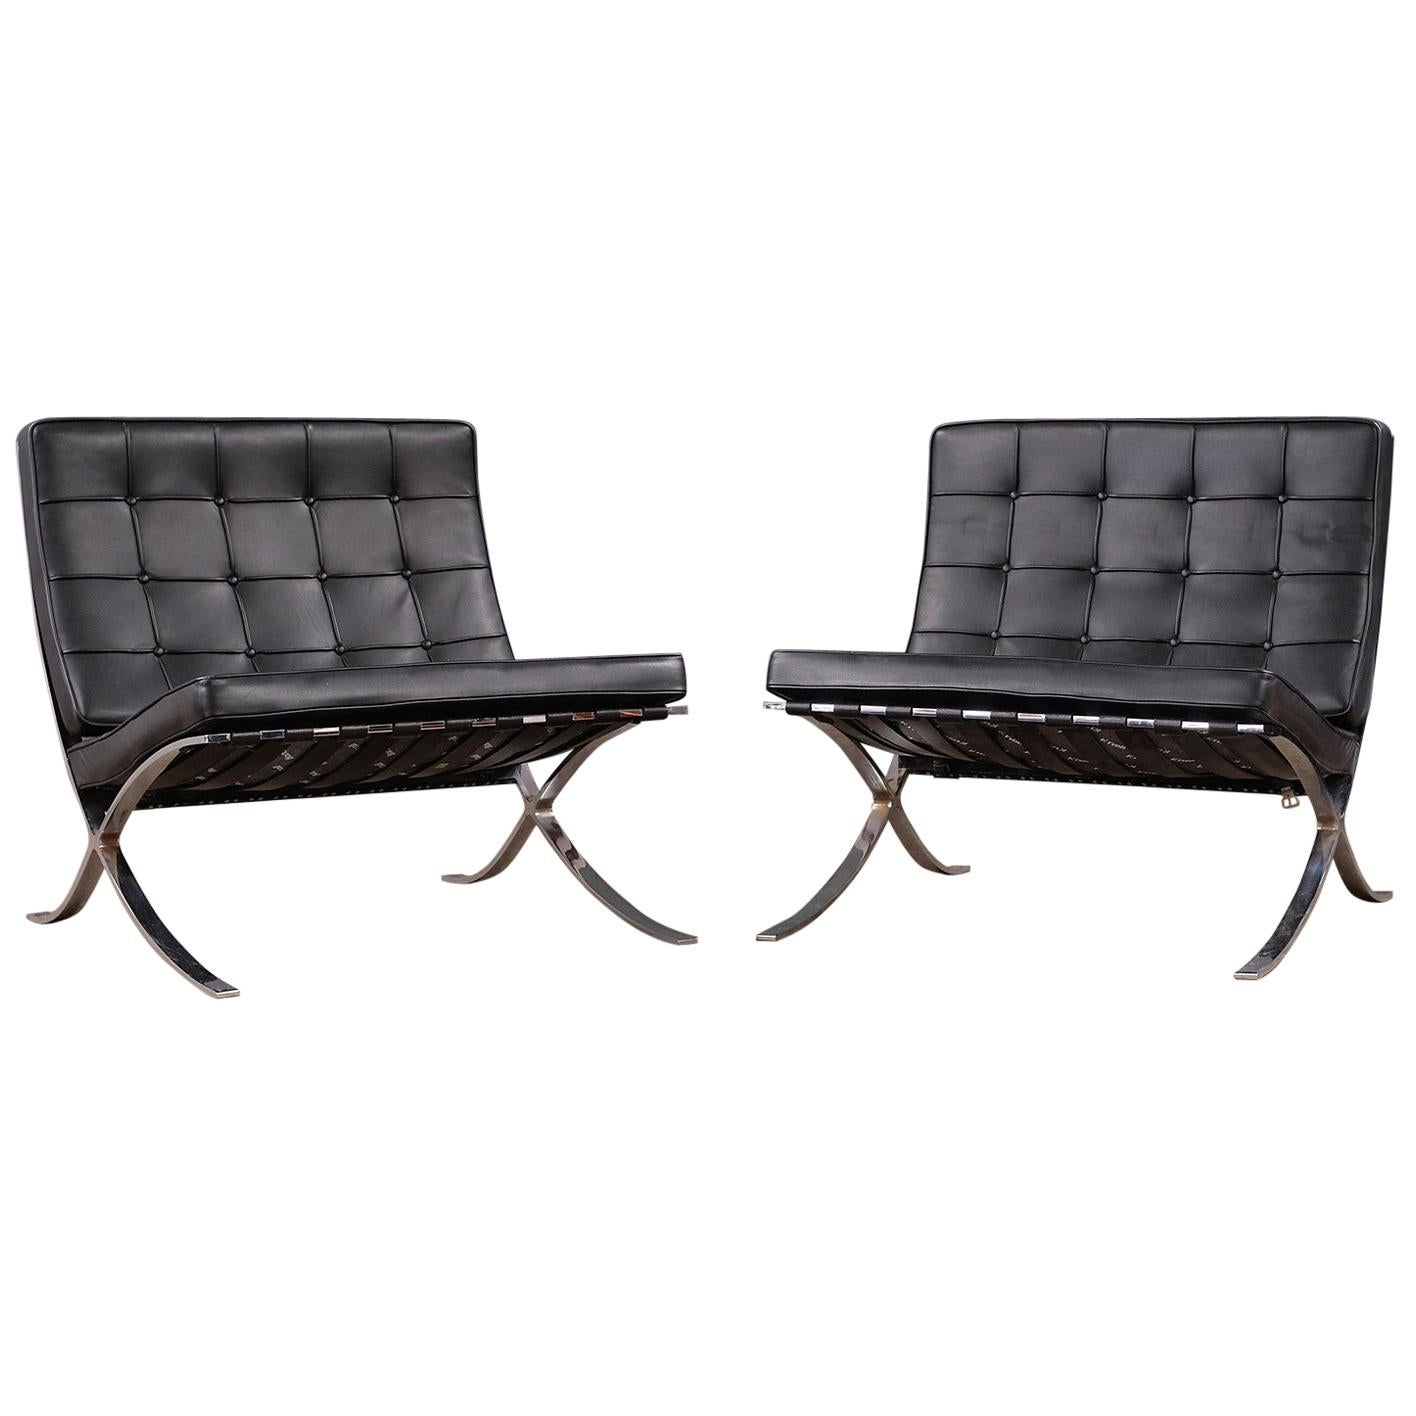 Barcelona Chairs For Sale Mies Van Der Rohe Barcelona Chairs